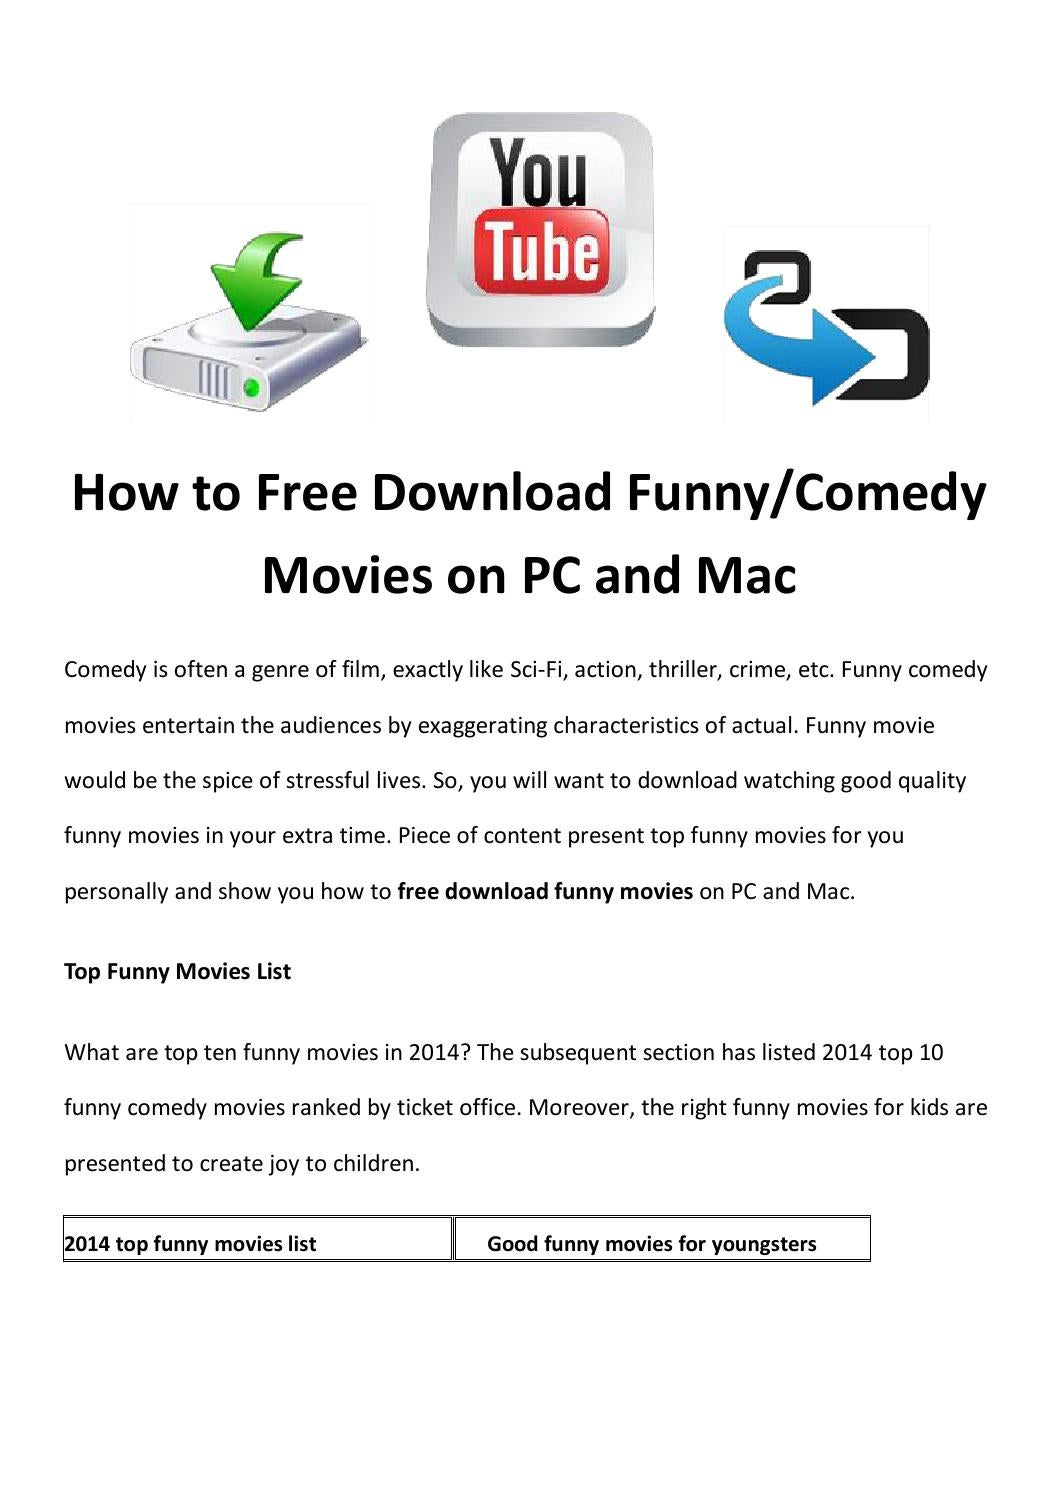 Free download funny comedy movies by amigabit - issuu